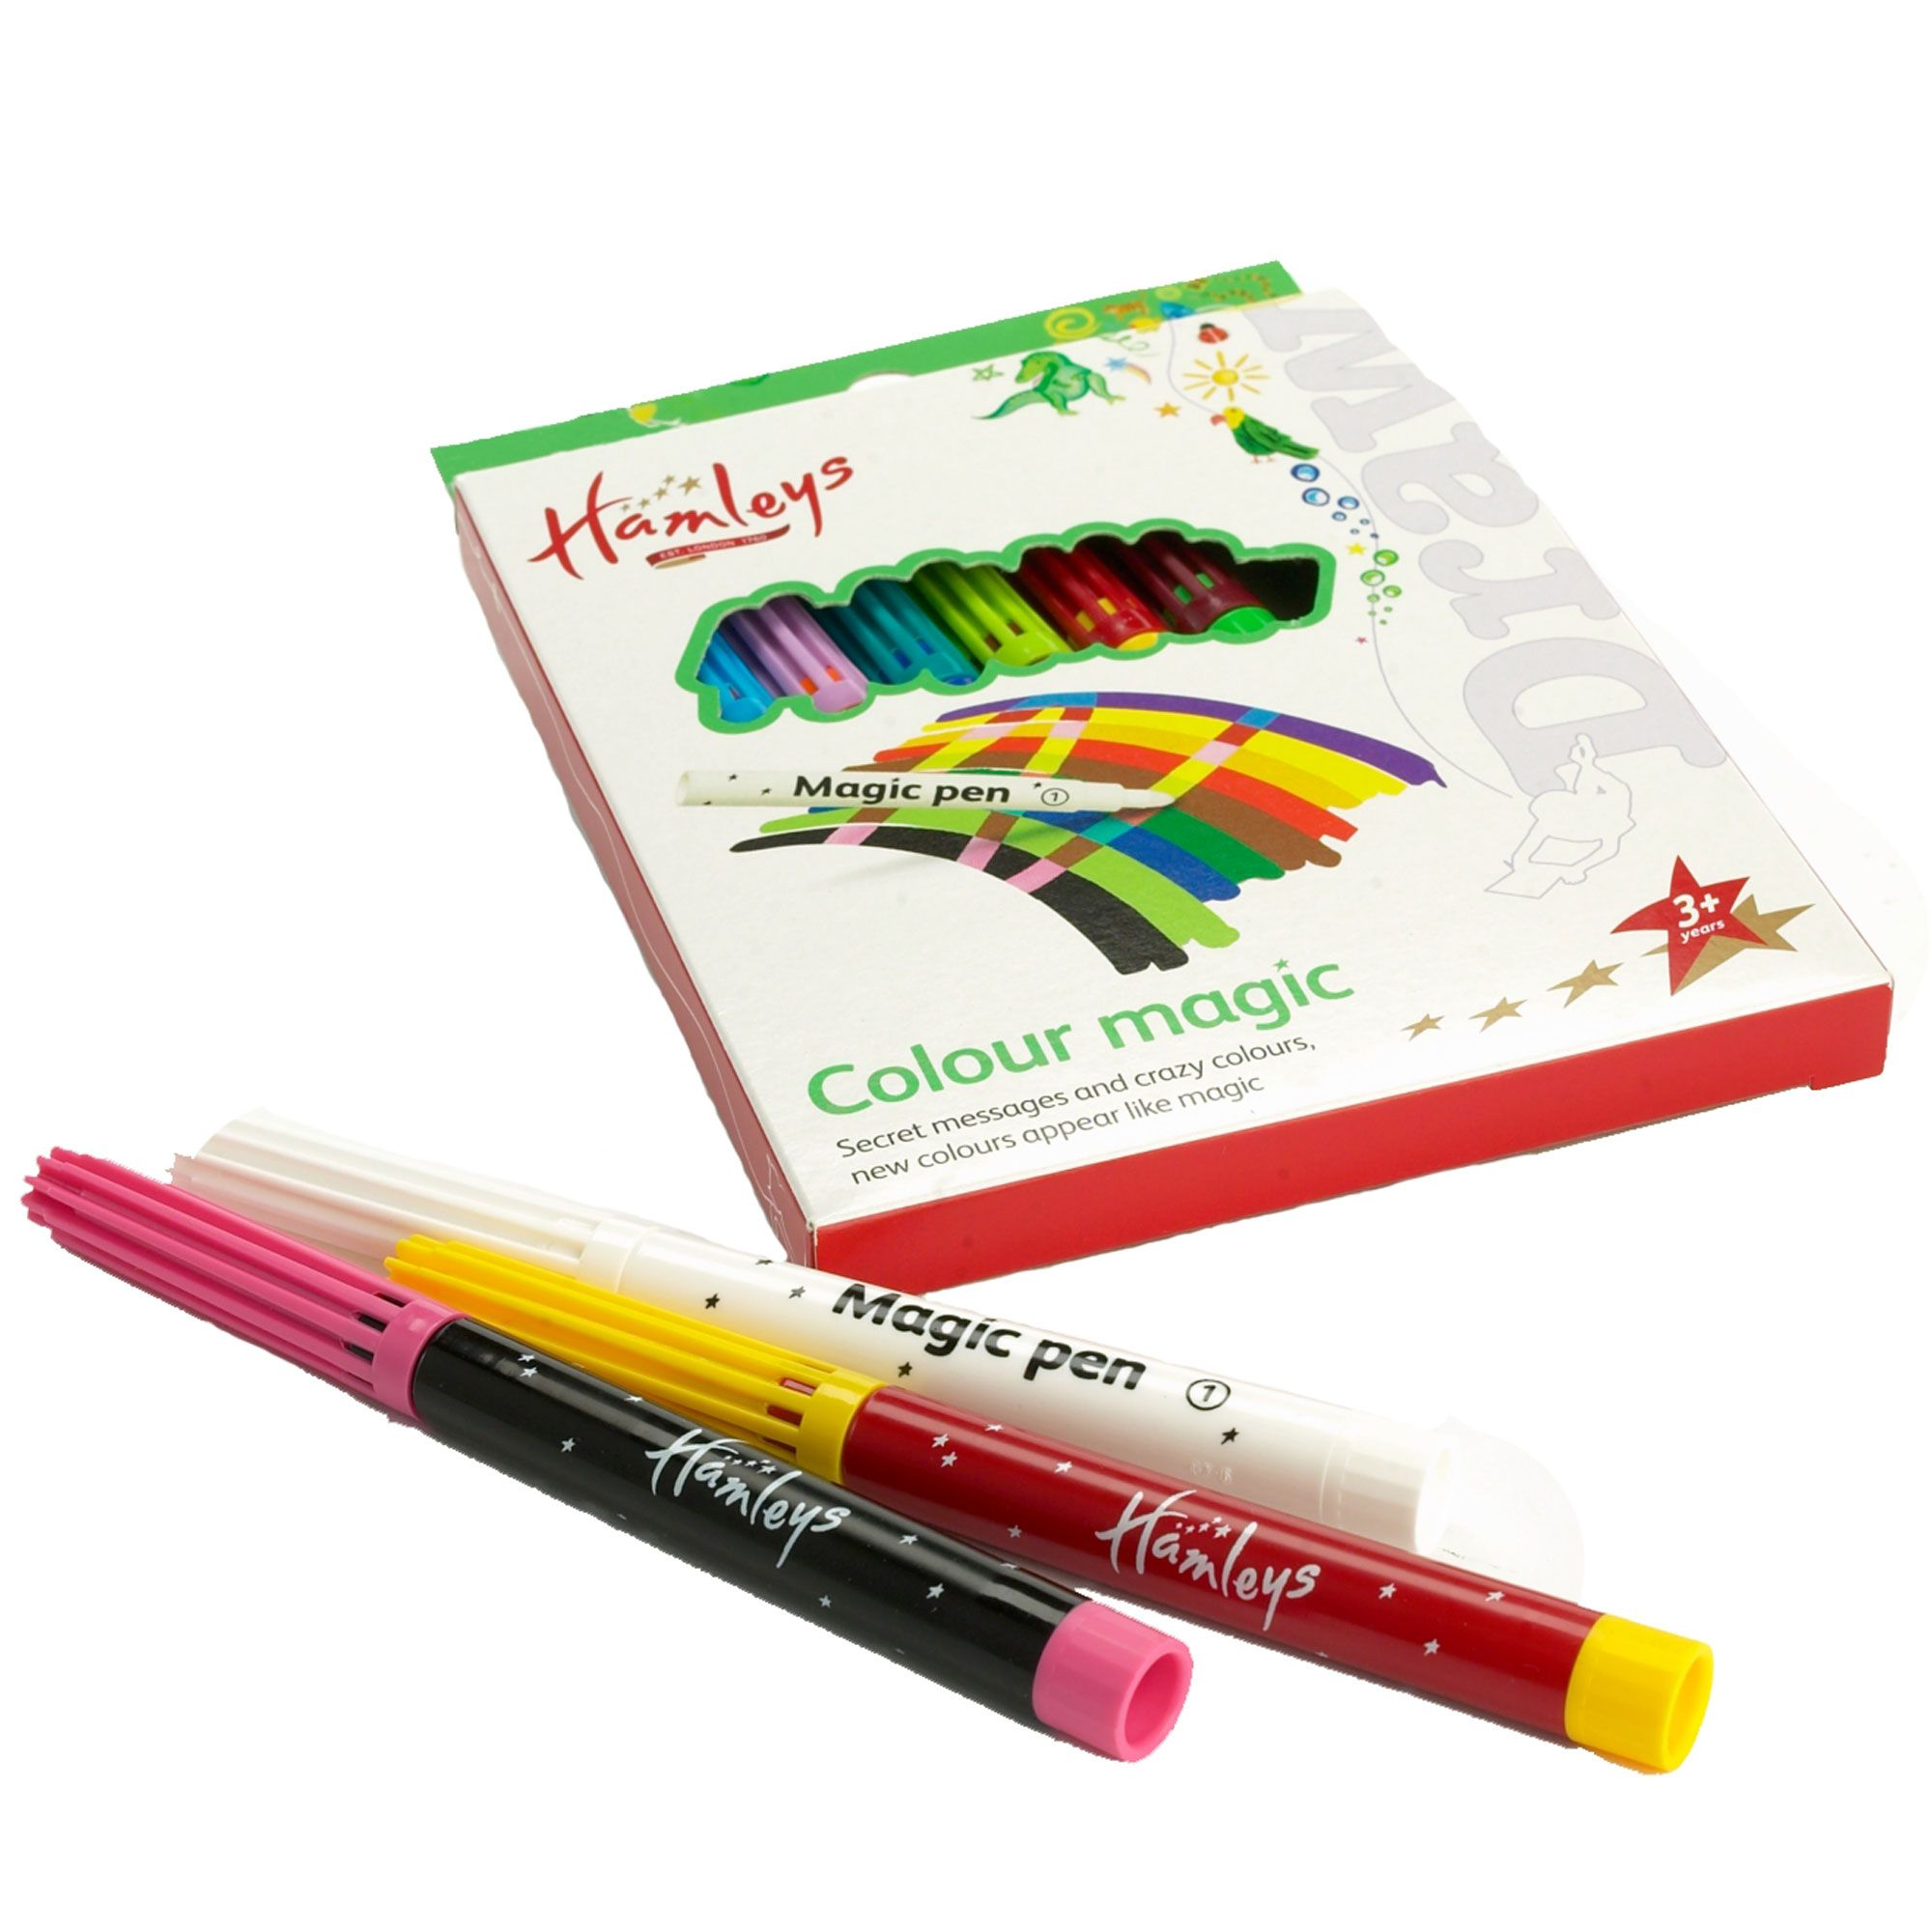 Colour magic pens